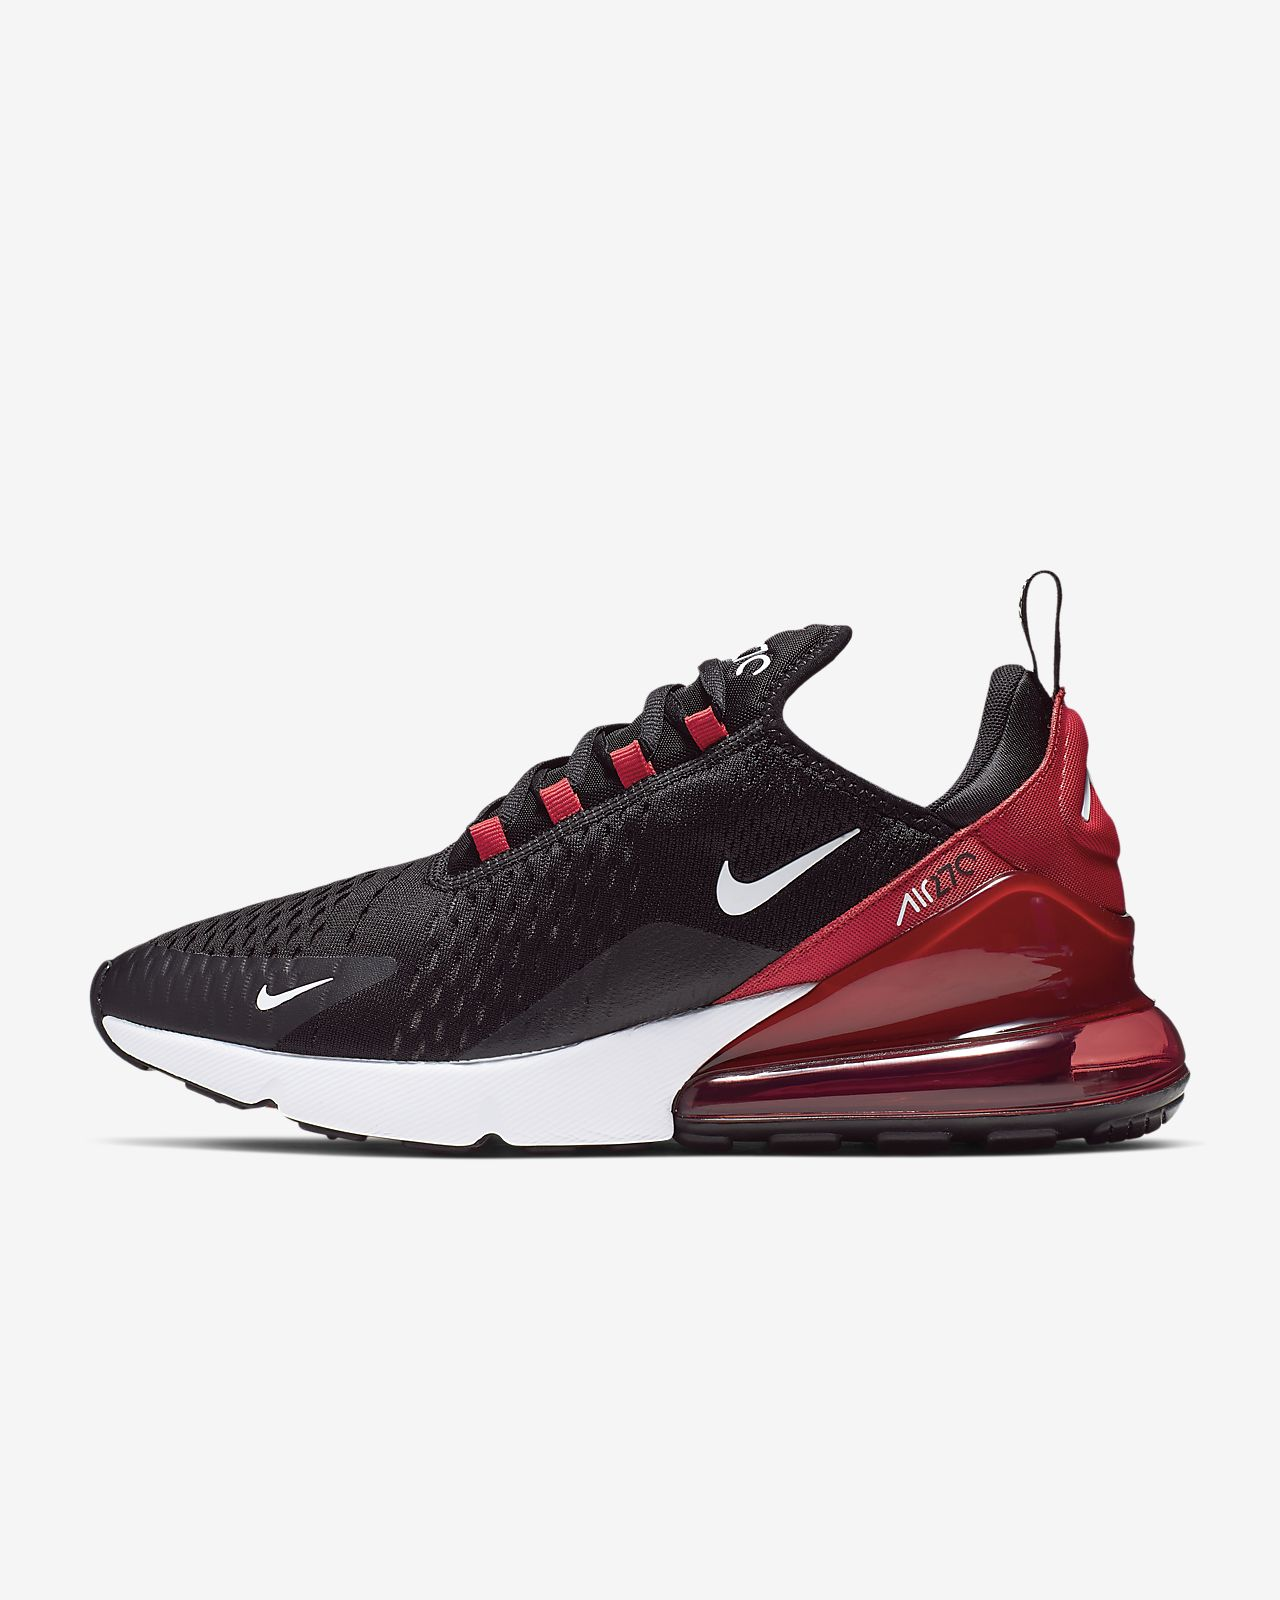 huge selection of e8e28 98c95 ... Sko Nike Air Max 270 för män